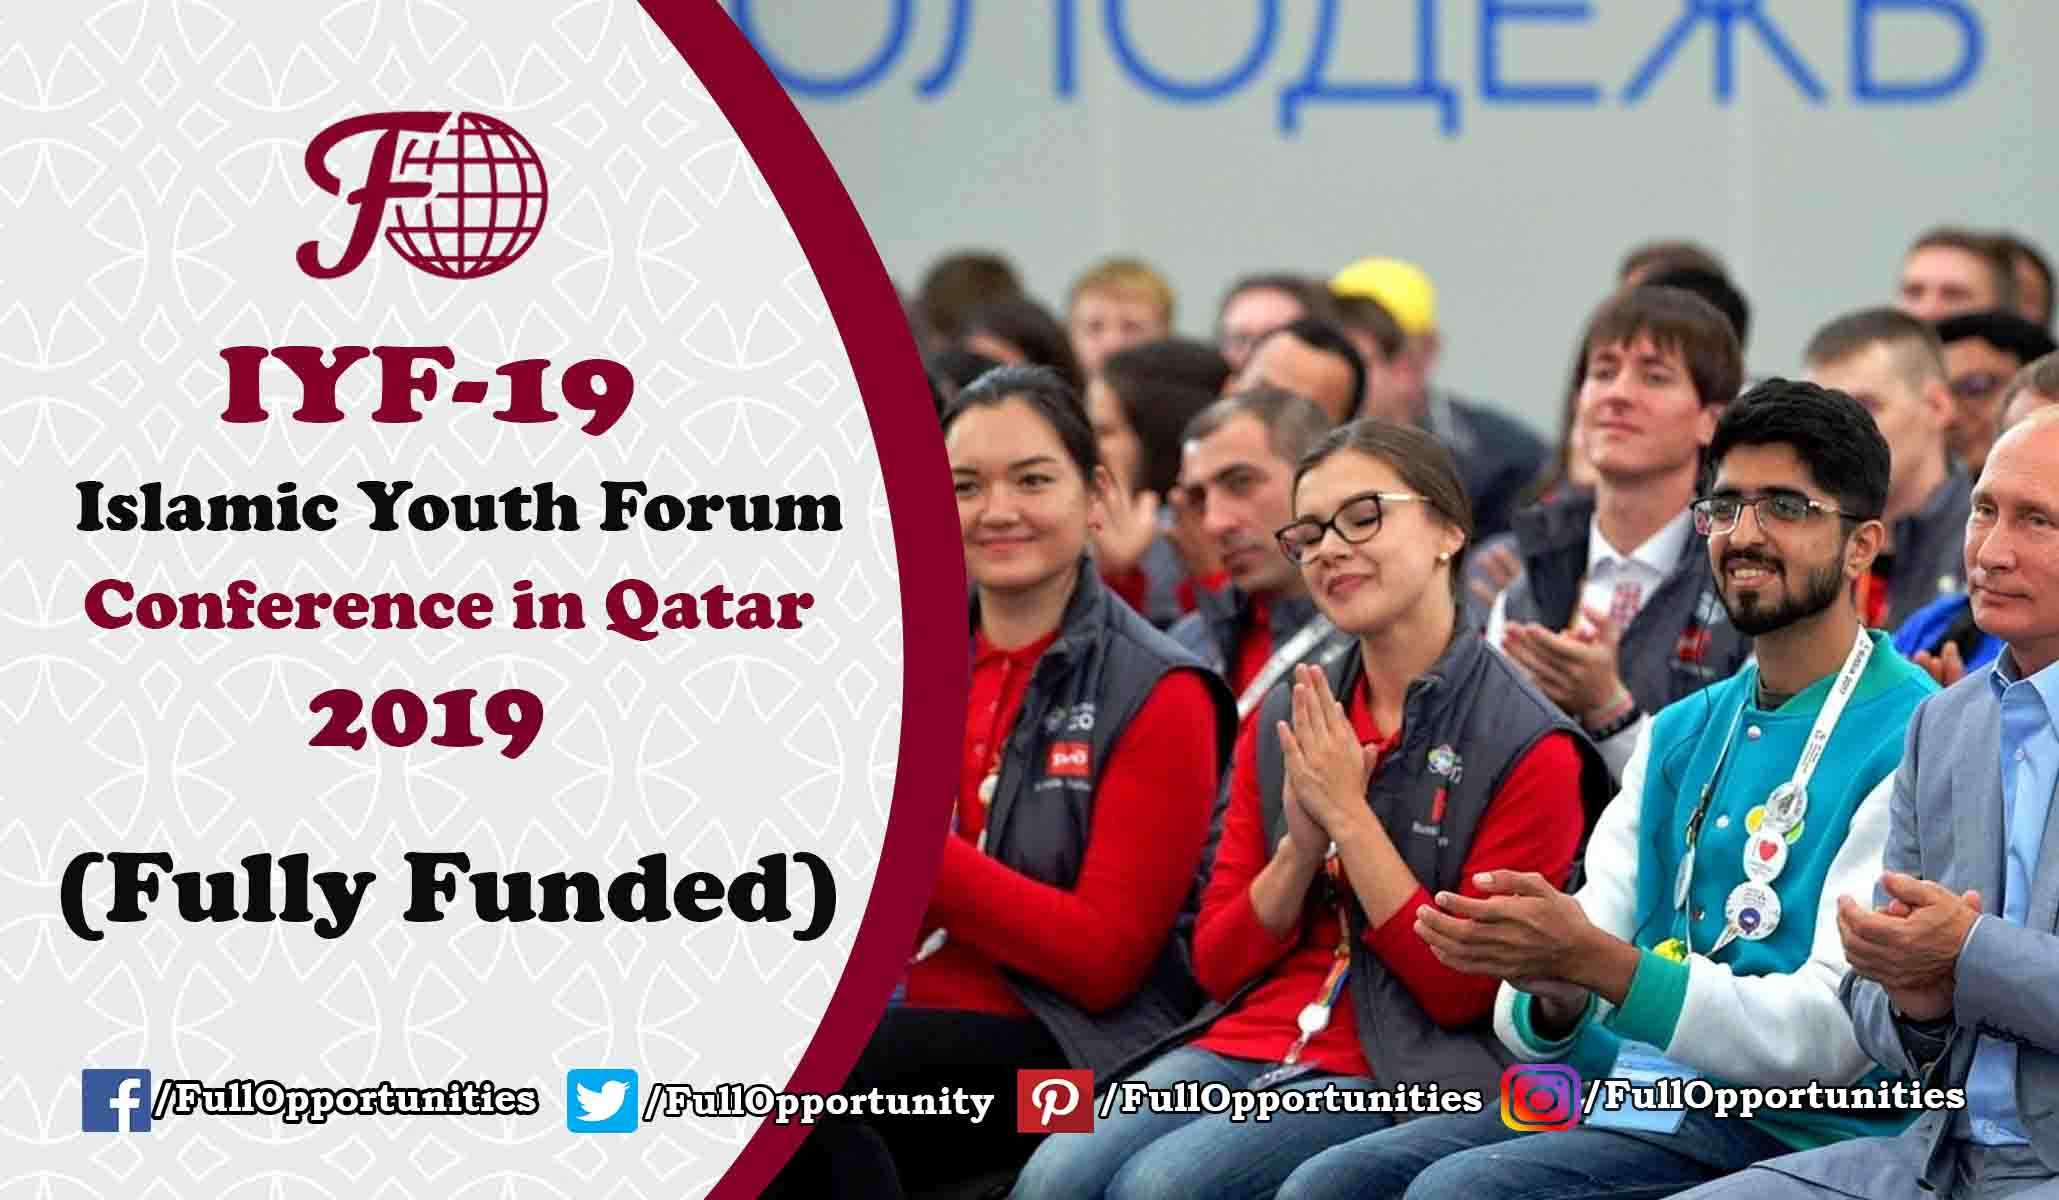 Islamic Youth Forum Conference in Qatar 2019 (Fully Funded)